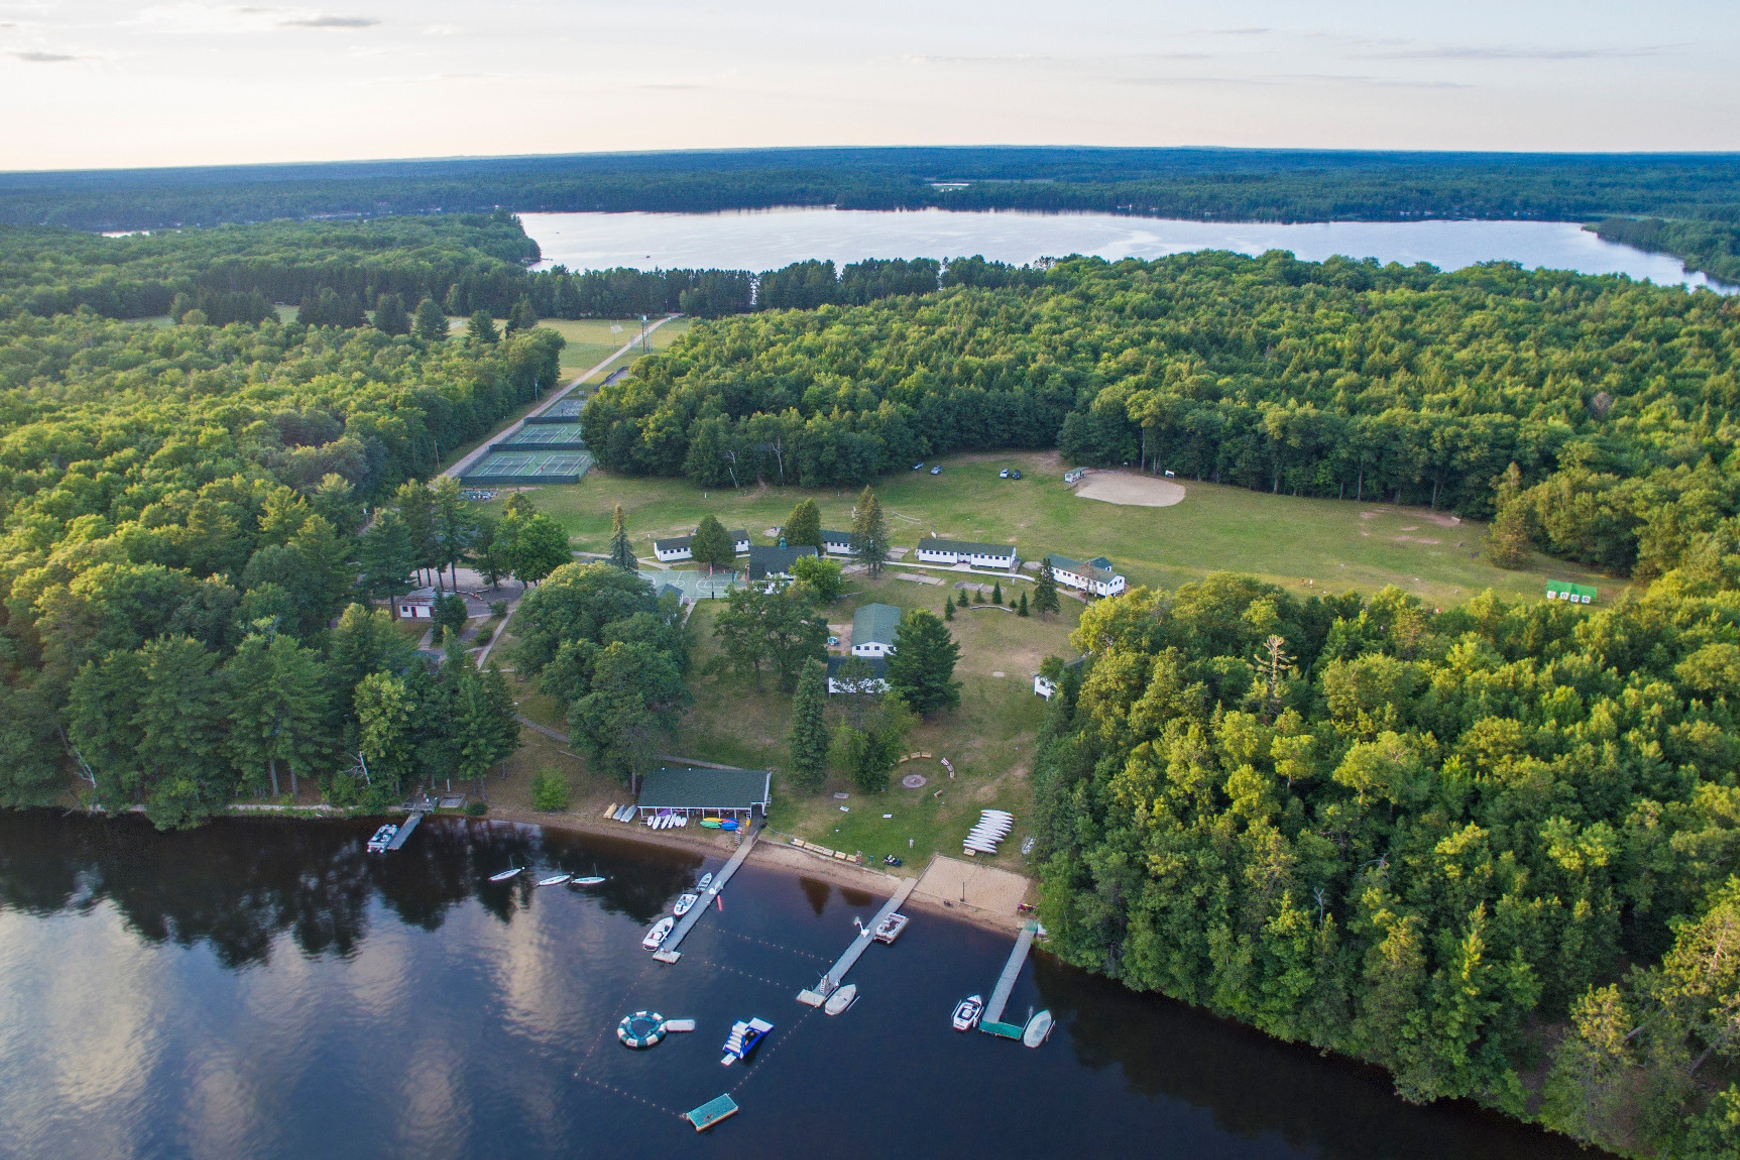 Overhead view of Camp Menominee on shore of Sand Lake in Eagle River, Wisconsin